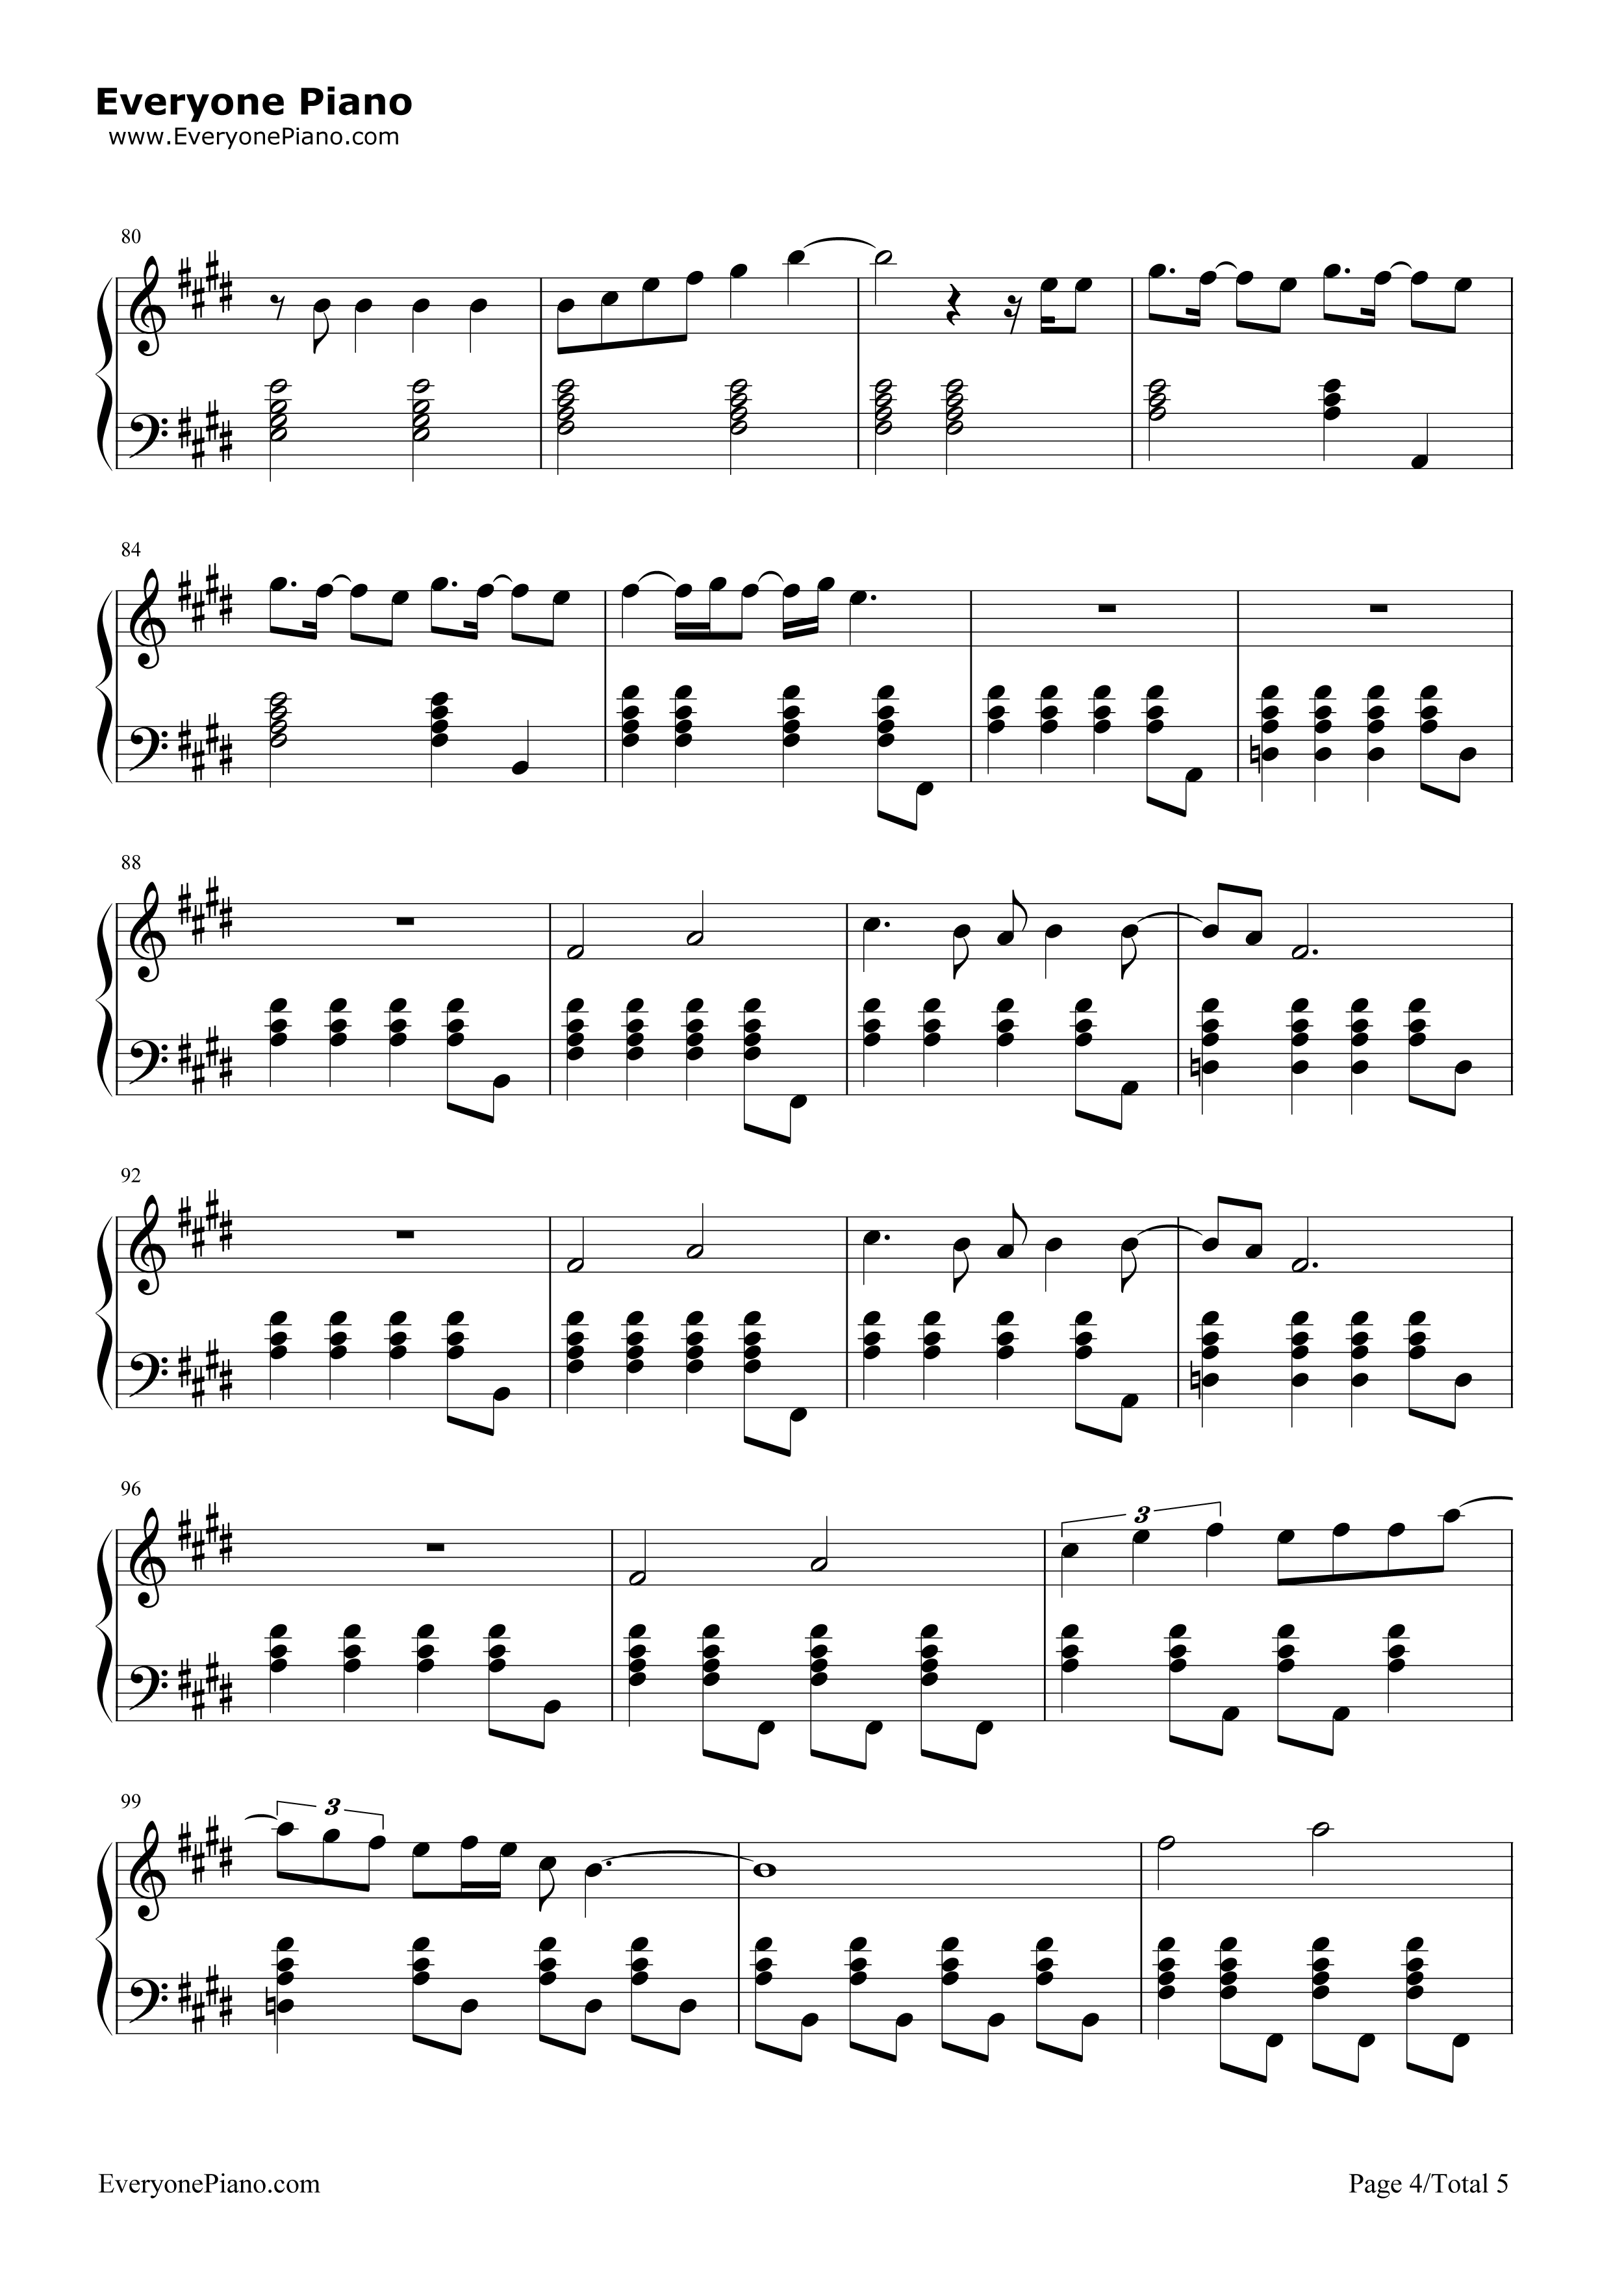 Lay Me Down-Sam Smith Stave Preview 4-Free Piano Sheet Music u0026 Piano Chords